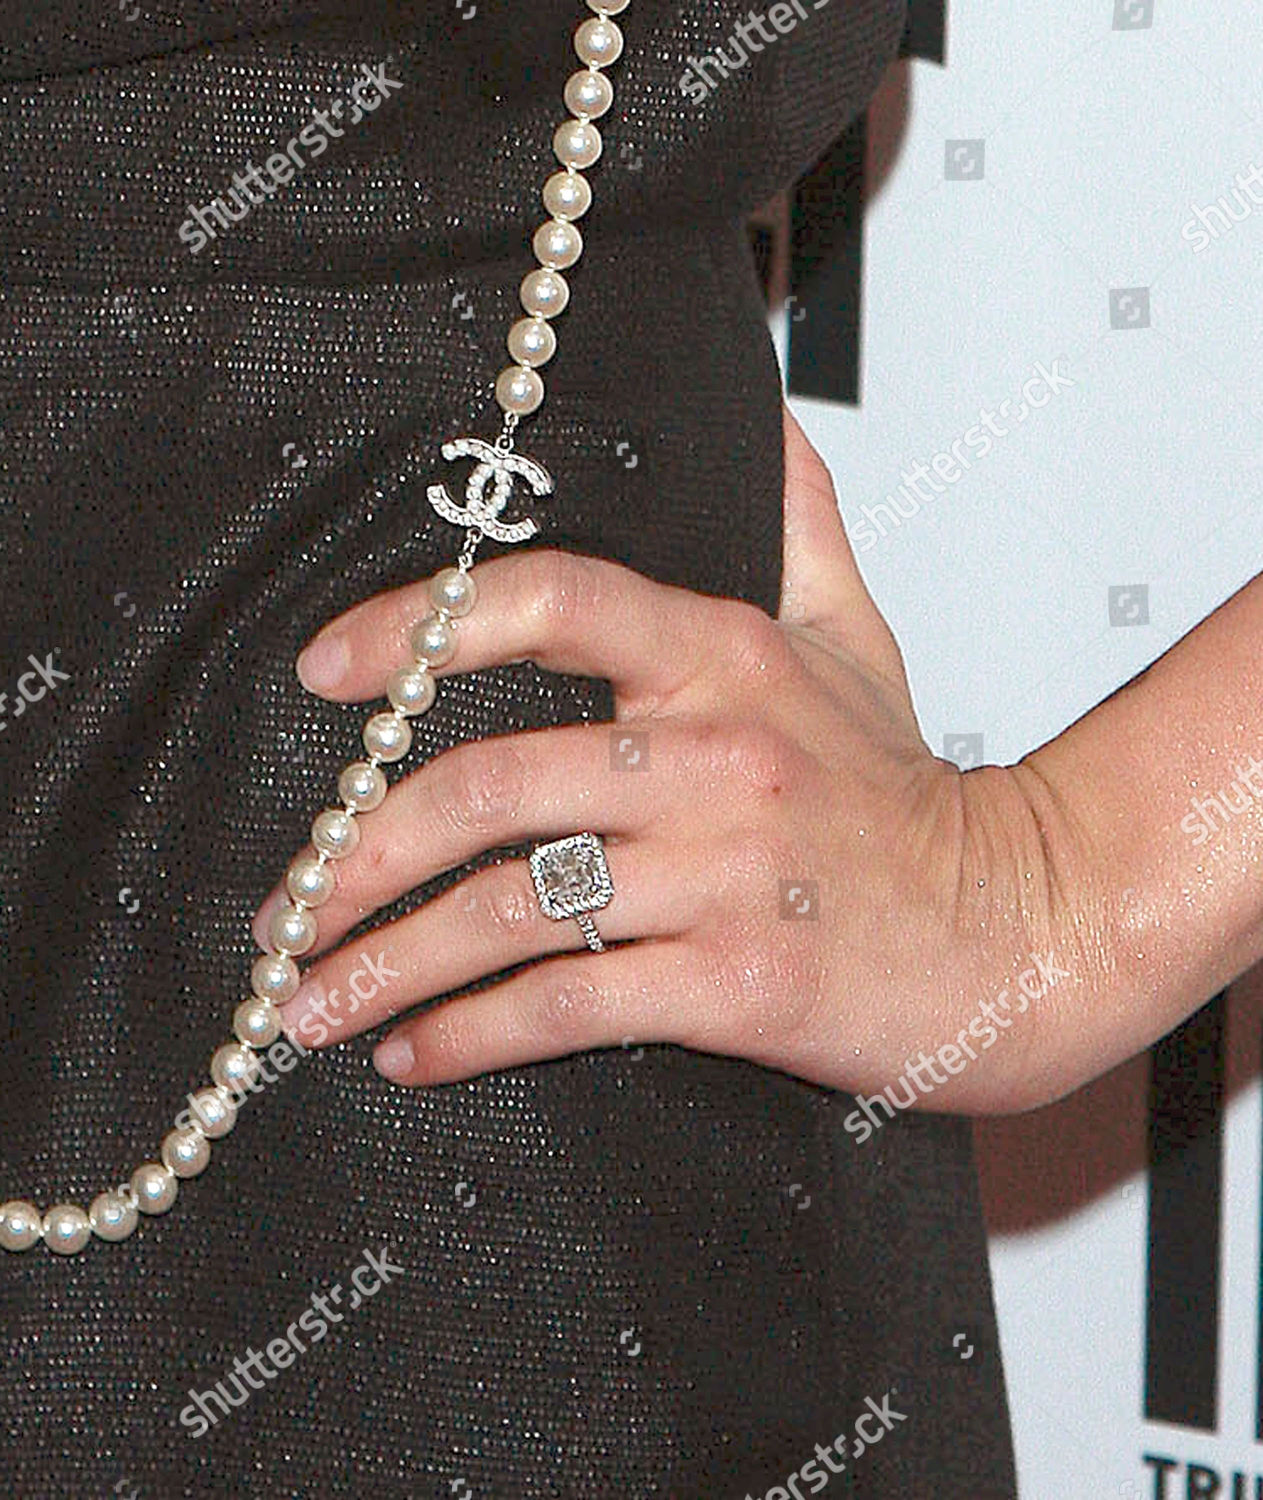 bfa3f33340552 Ashlee Simpsons engagement ring chanel necklace Editorial Stock ...